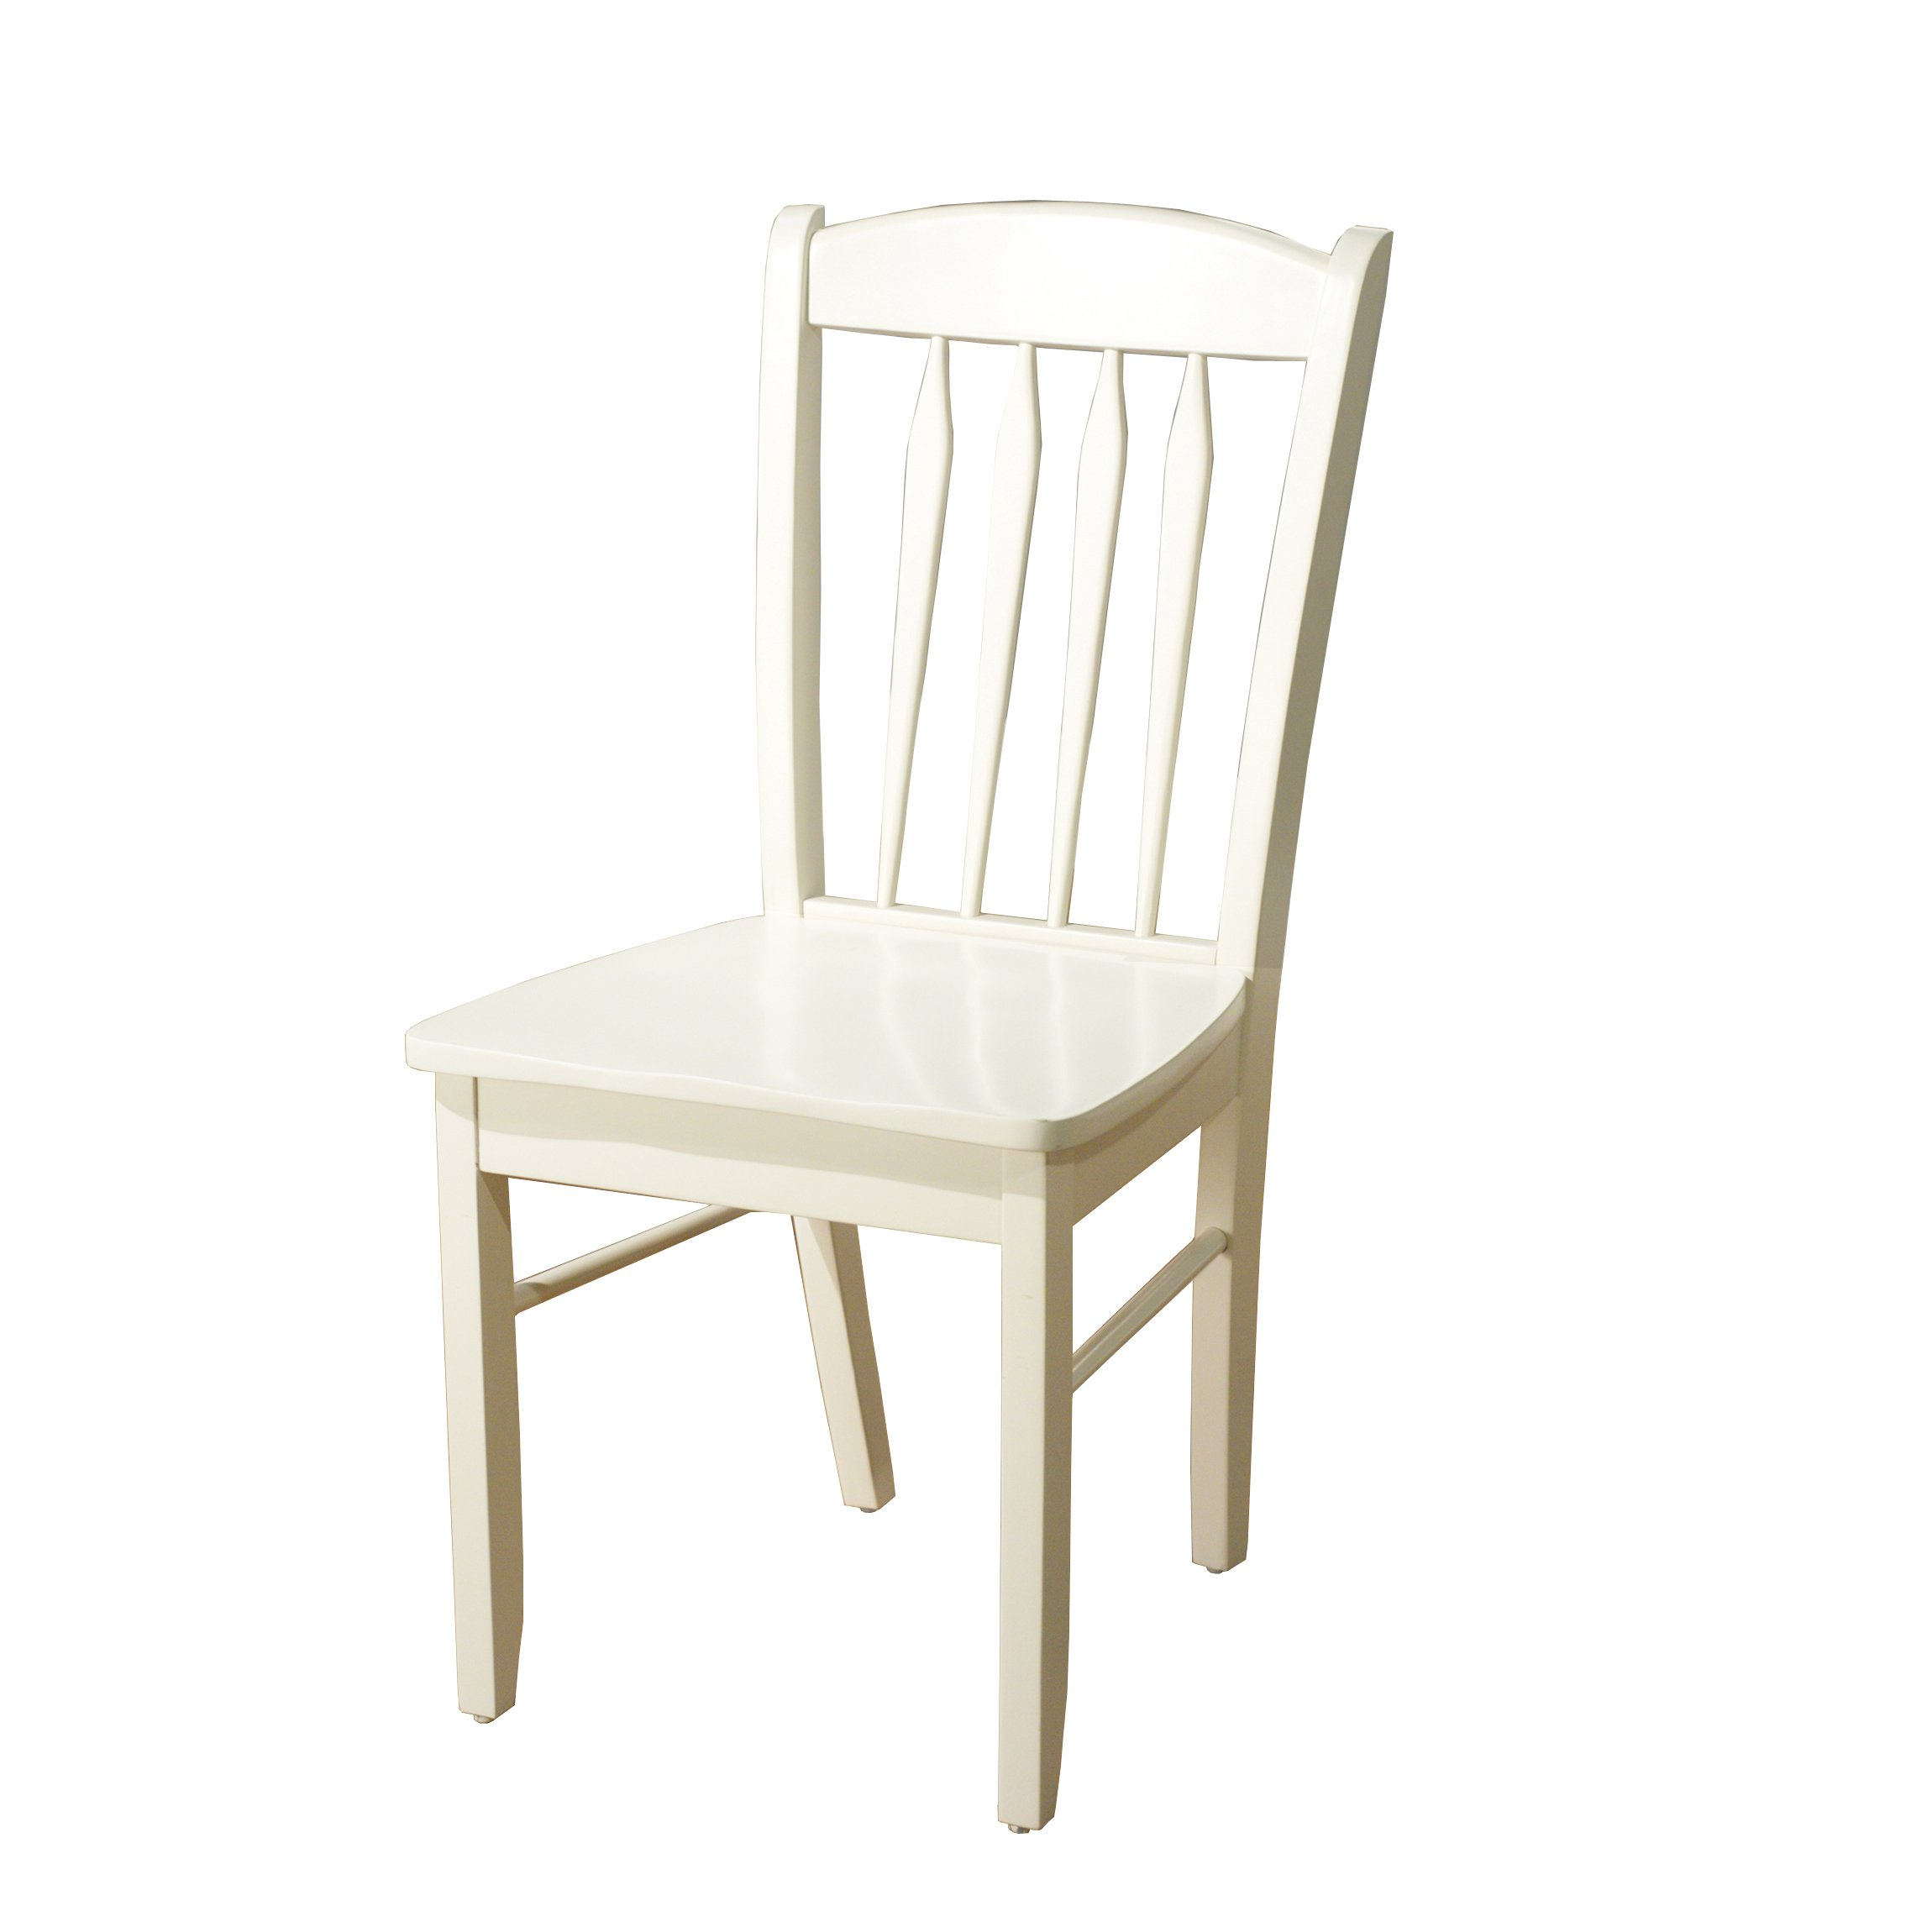 Target Marketing Systems 33418WHT Savannah Chair Dining, White